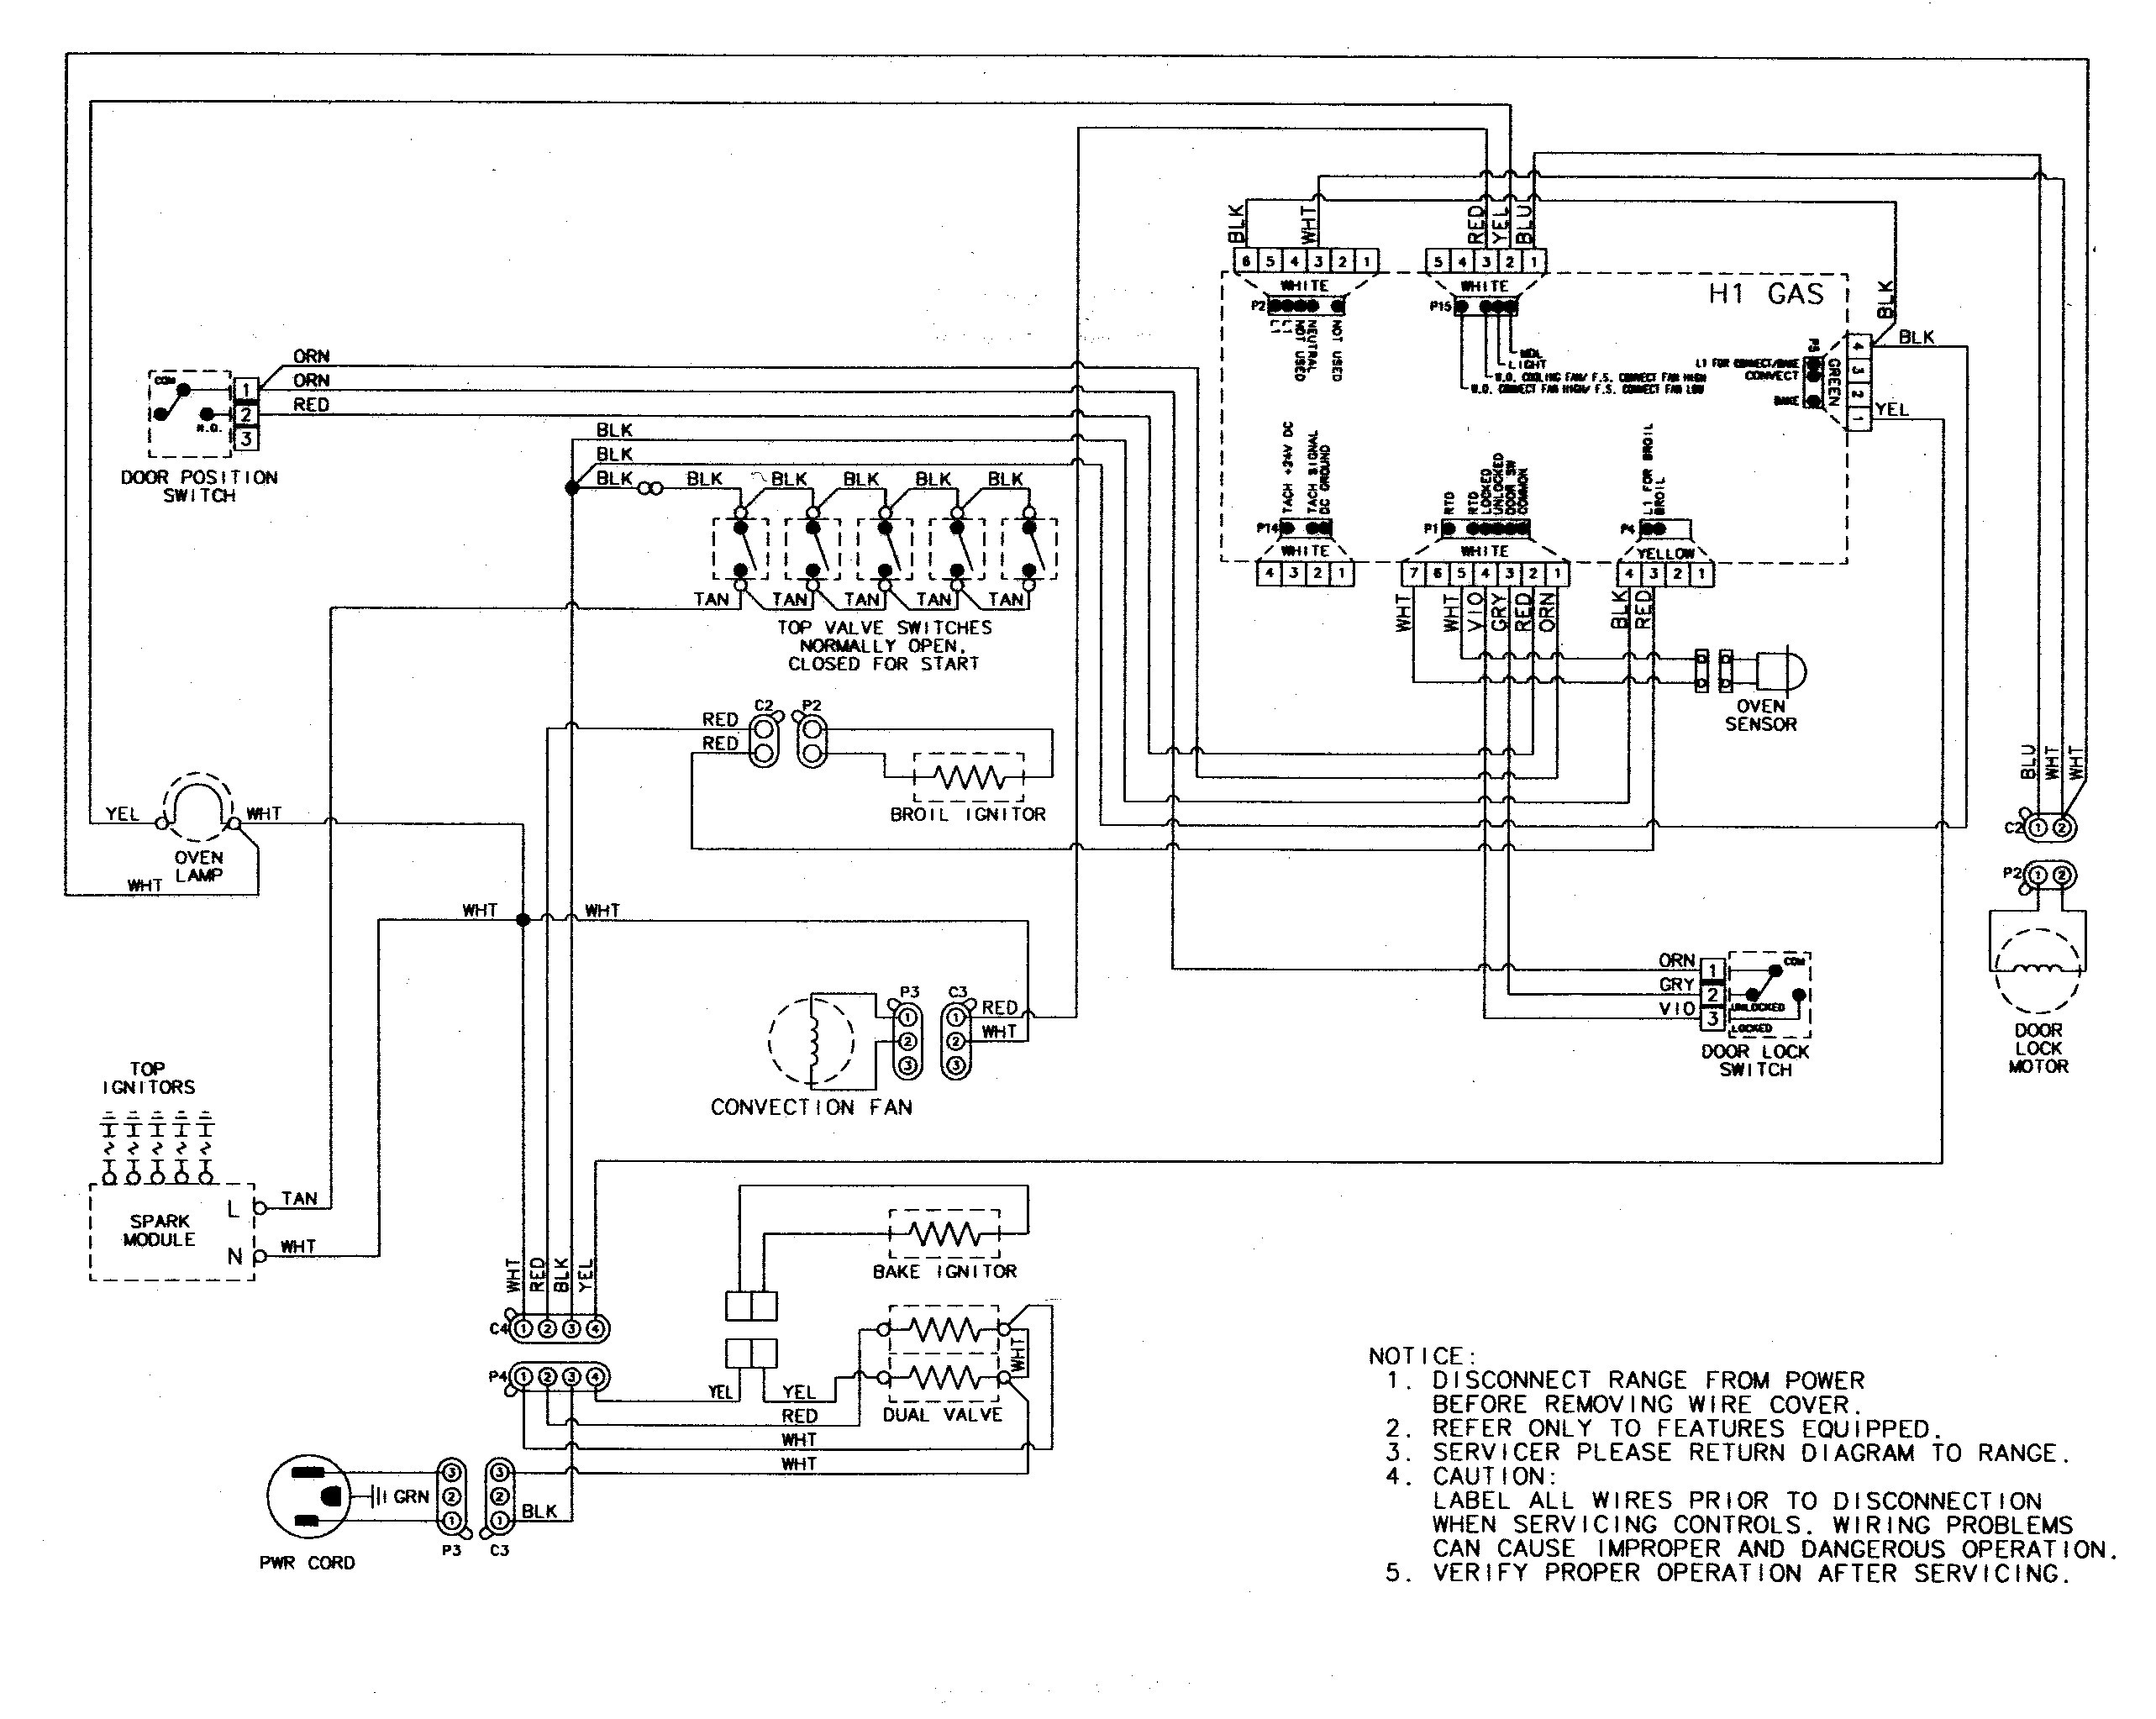 Wiring Diagram For Roper Dryer Model Red4440vq1 Free